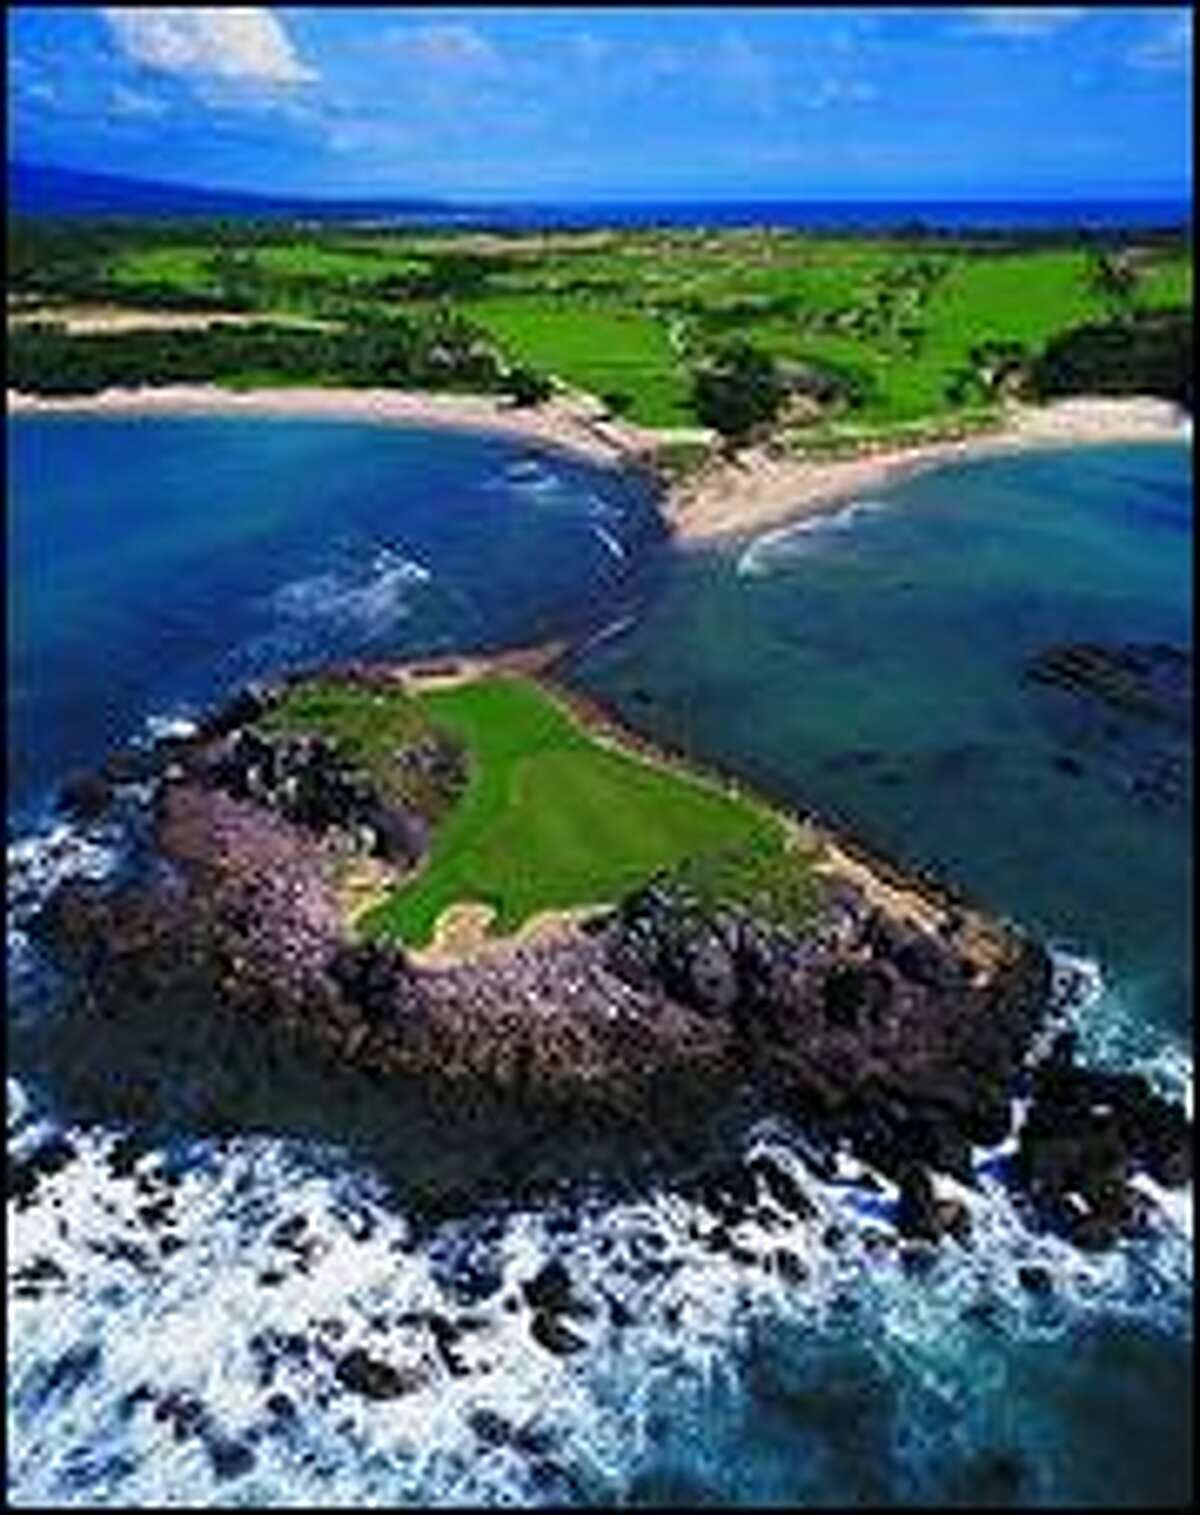 The green on No. 3 at the St. Regis Punta Mita Pacifico course is known as the Tail of the Whale. It is the only natural island green in the world. (Courtesy St. Regis Punta Mita Resort)